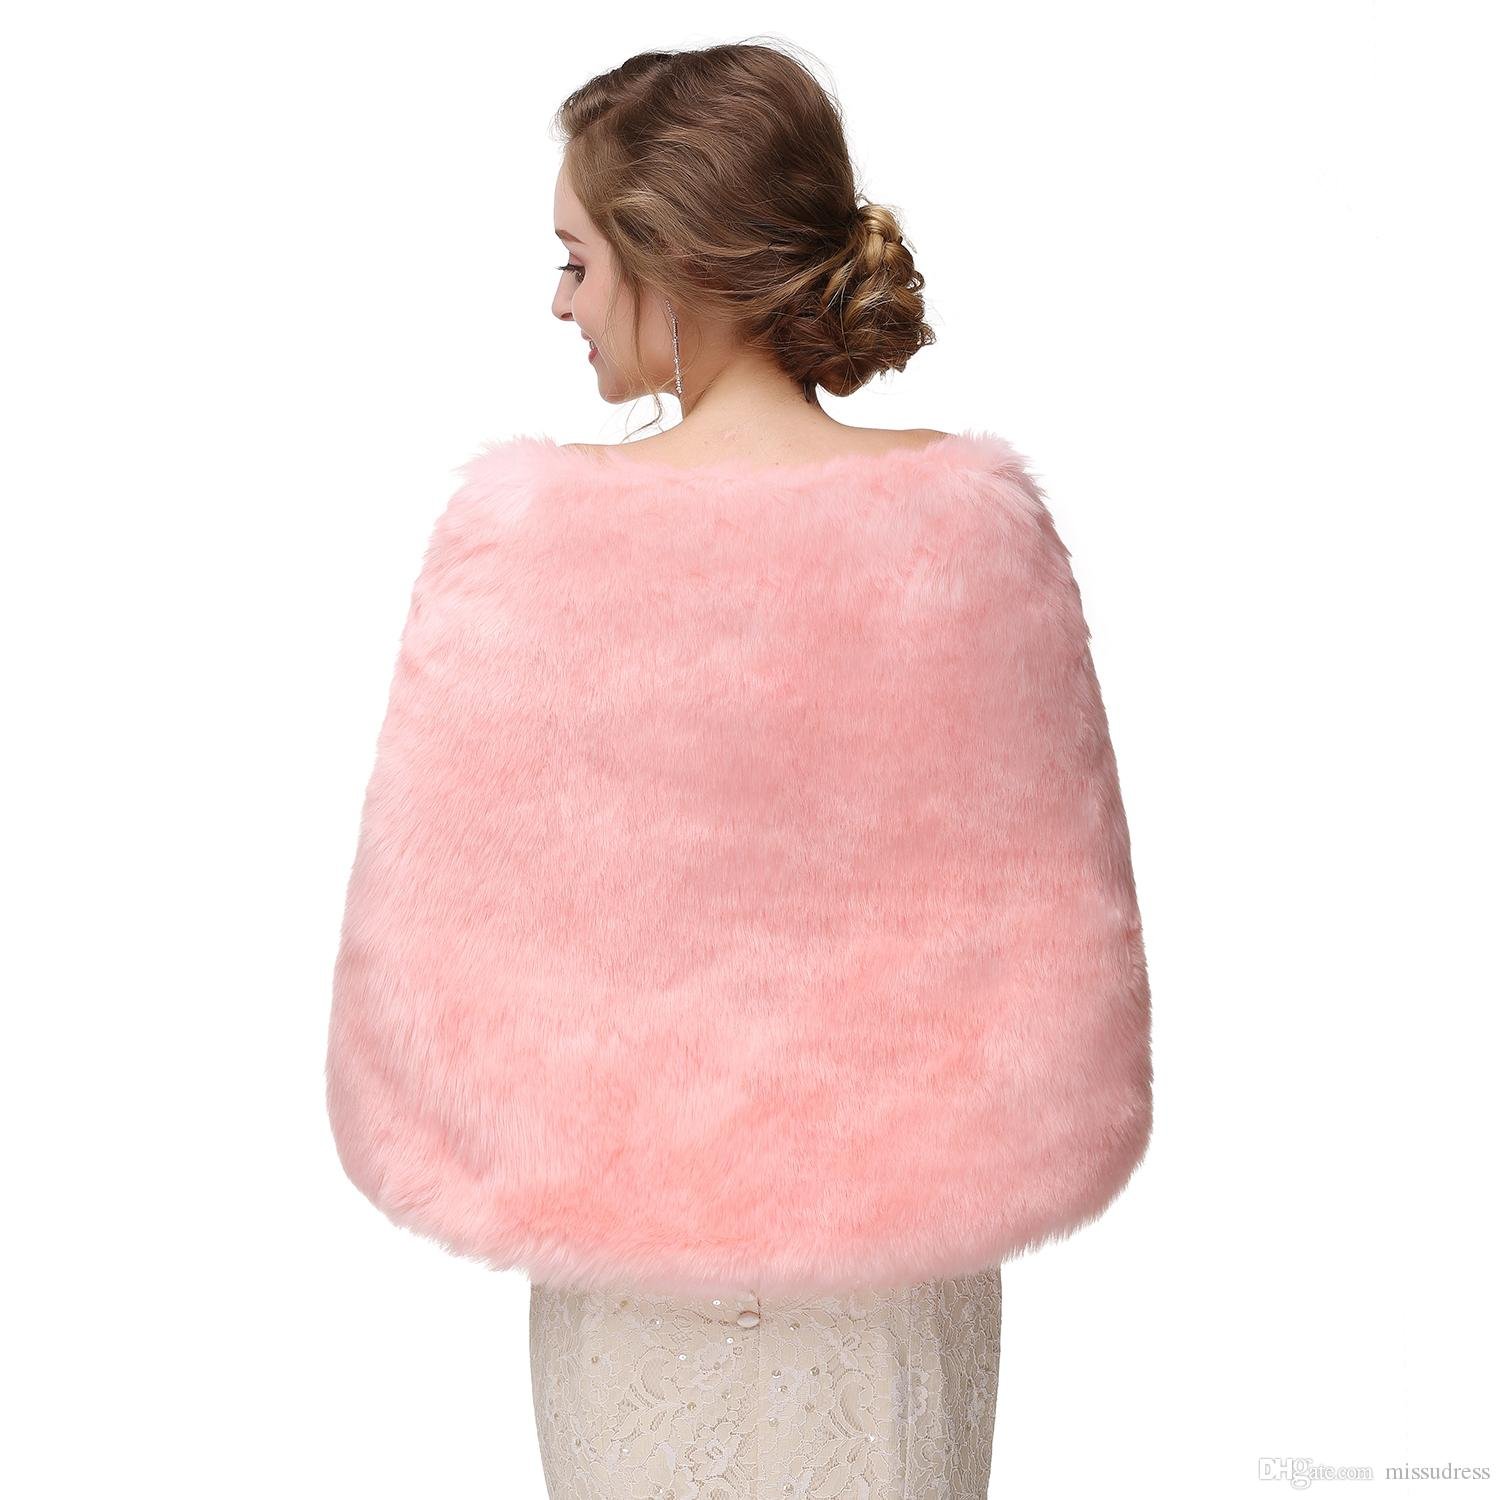 2017 New Arrival Faux Fur Pink Winter Bridal Jacket Warm Boleros Luxurious Wedding Bride Wraps Cape Wedding Jacket